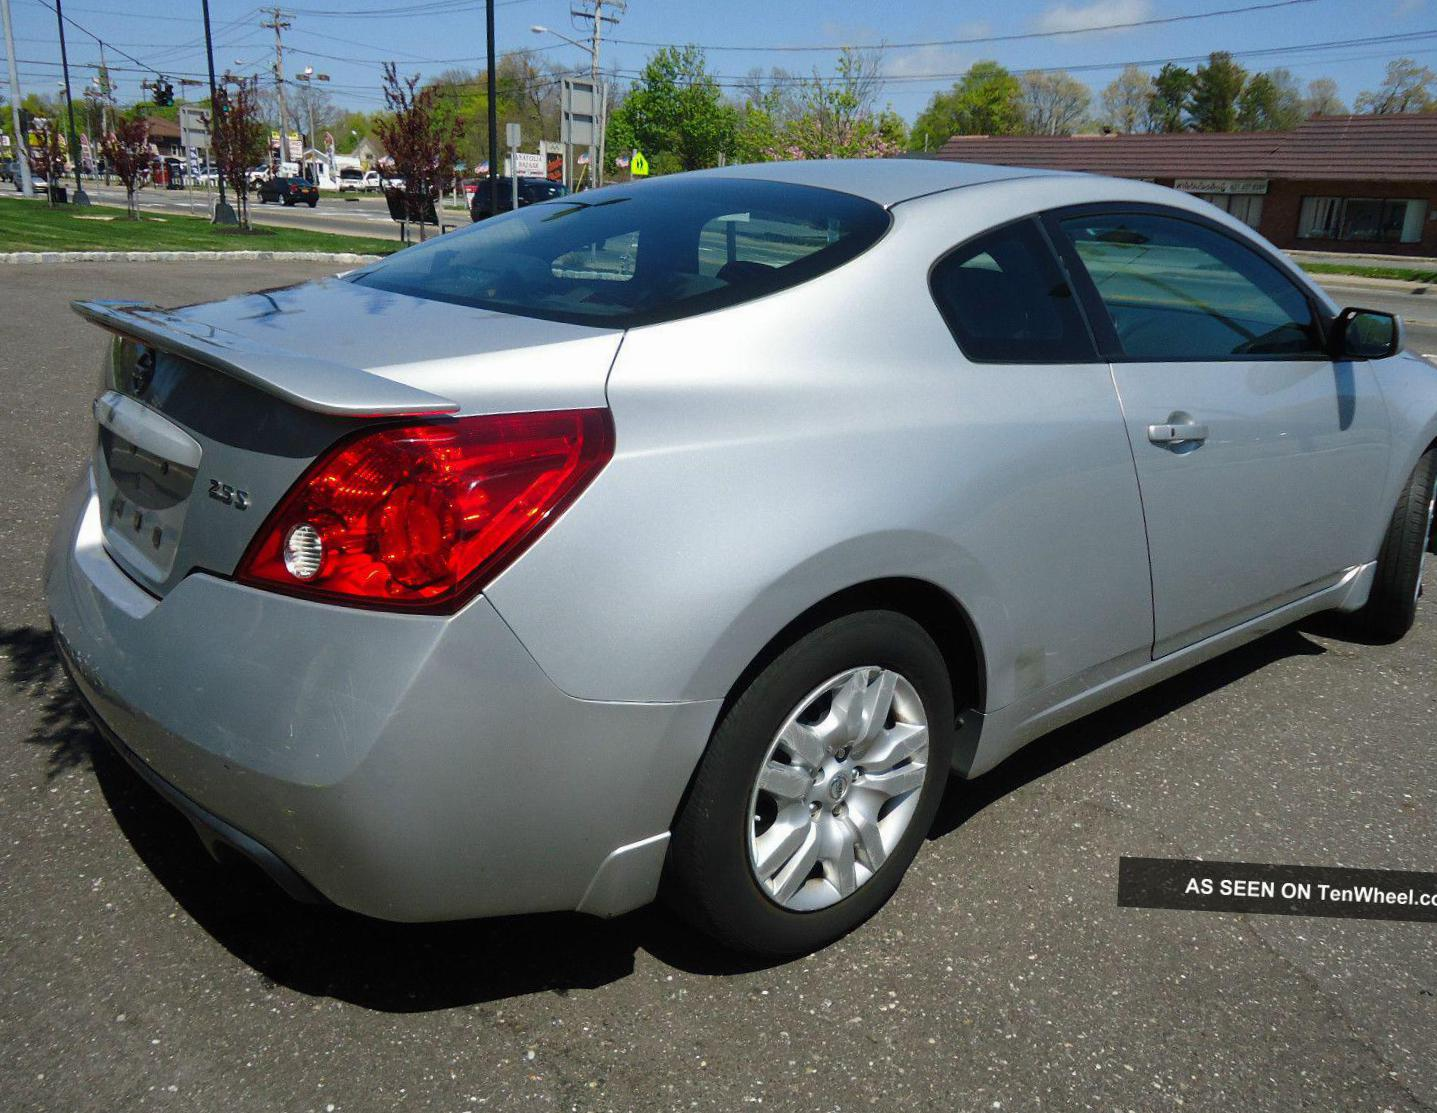 sale for nissan pictures altima specs the coupe review price